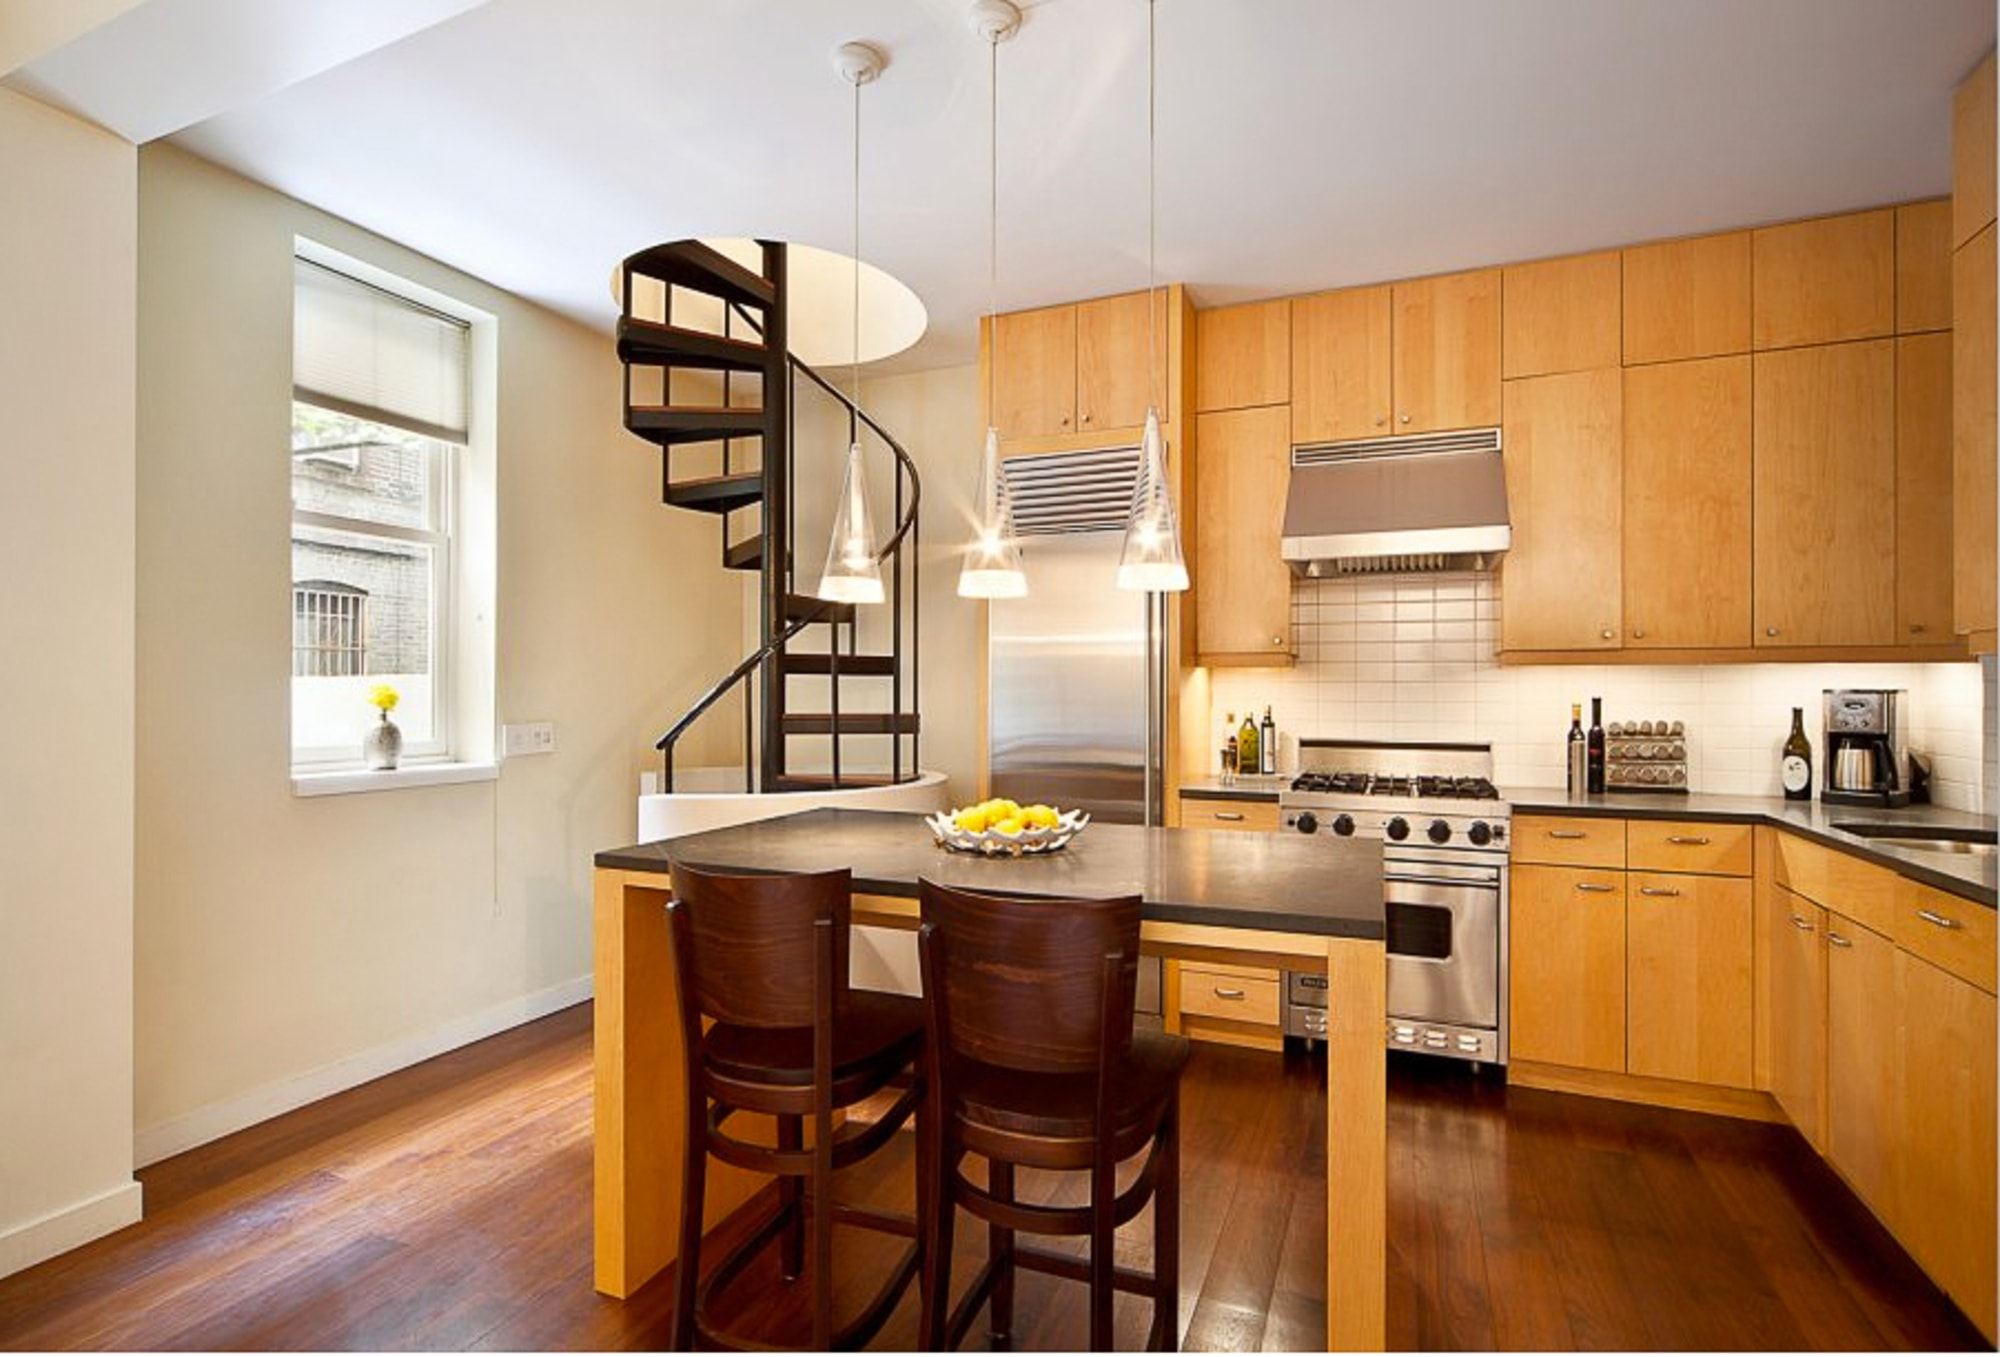 Modern kitchen with spiral staircase leading through the ceiling